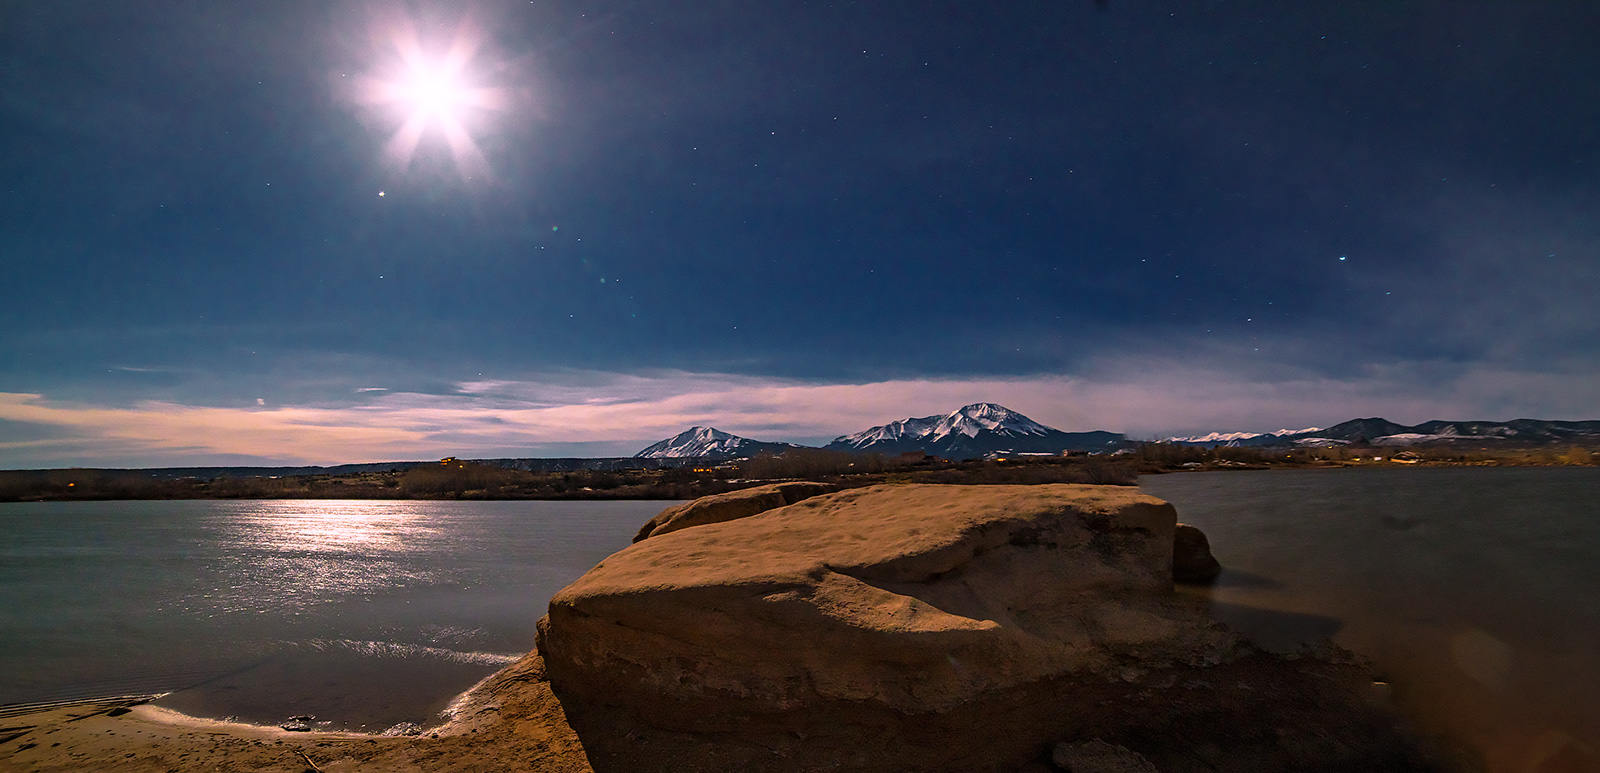 Spanish Peaks, La Veta, Colorado, moonrise, photo